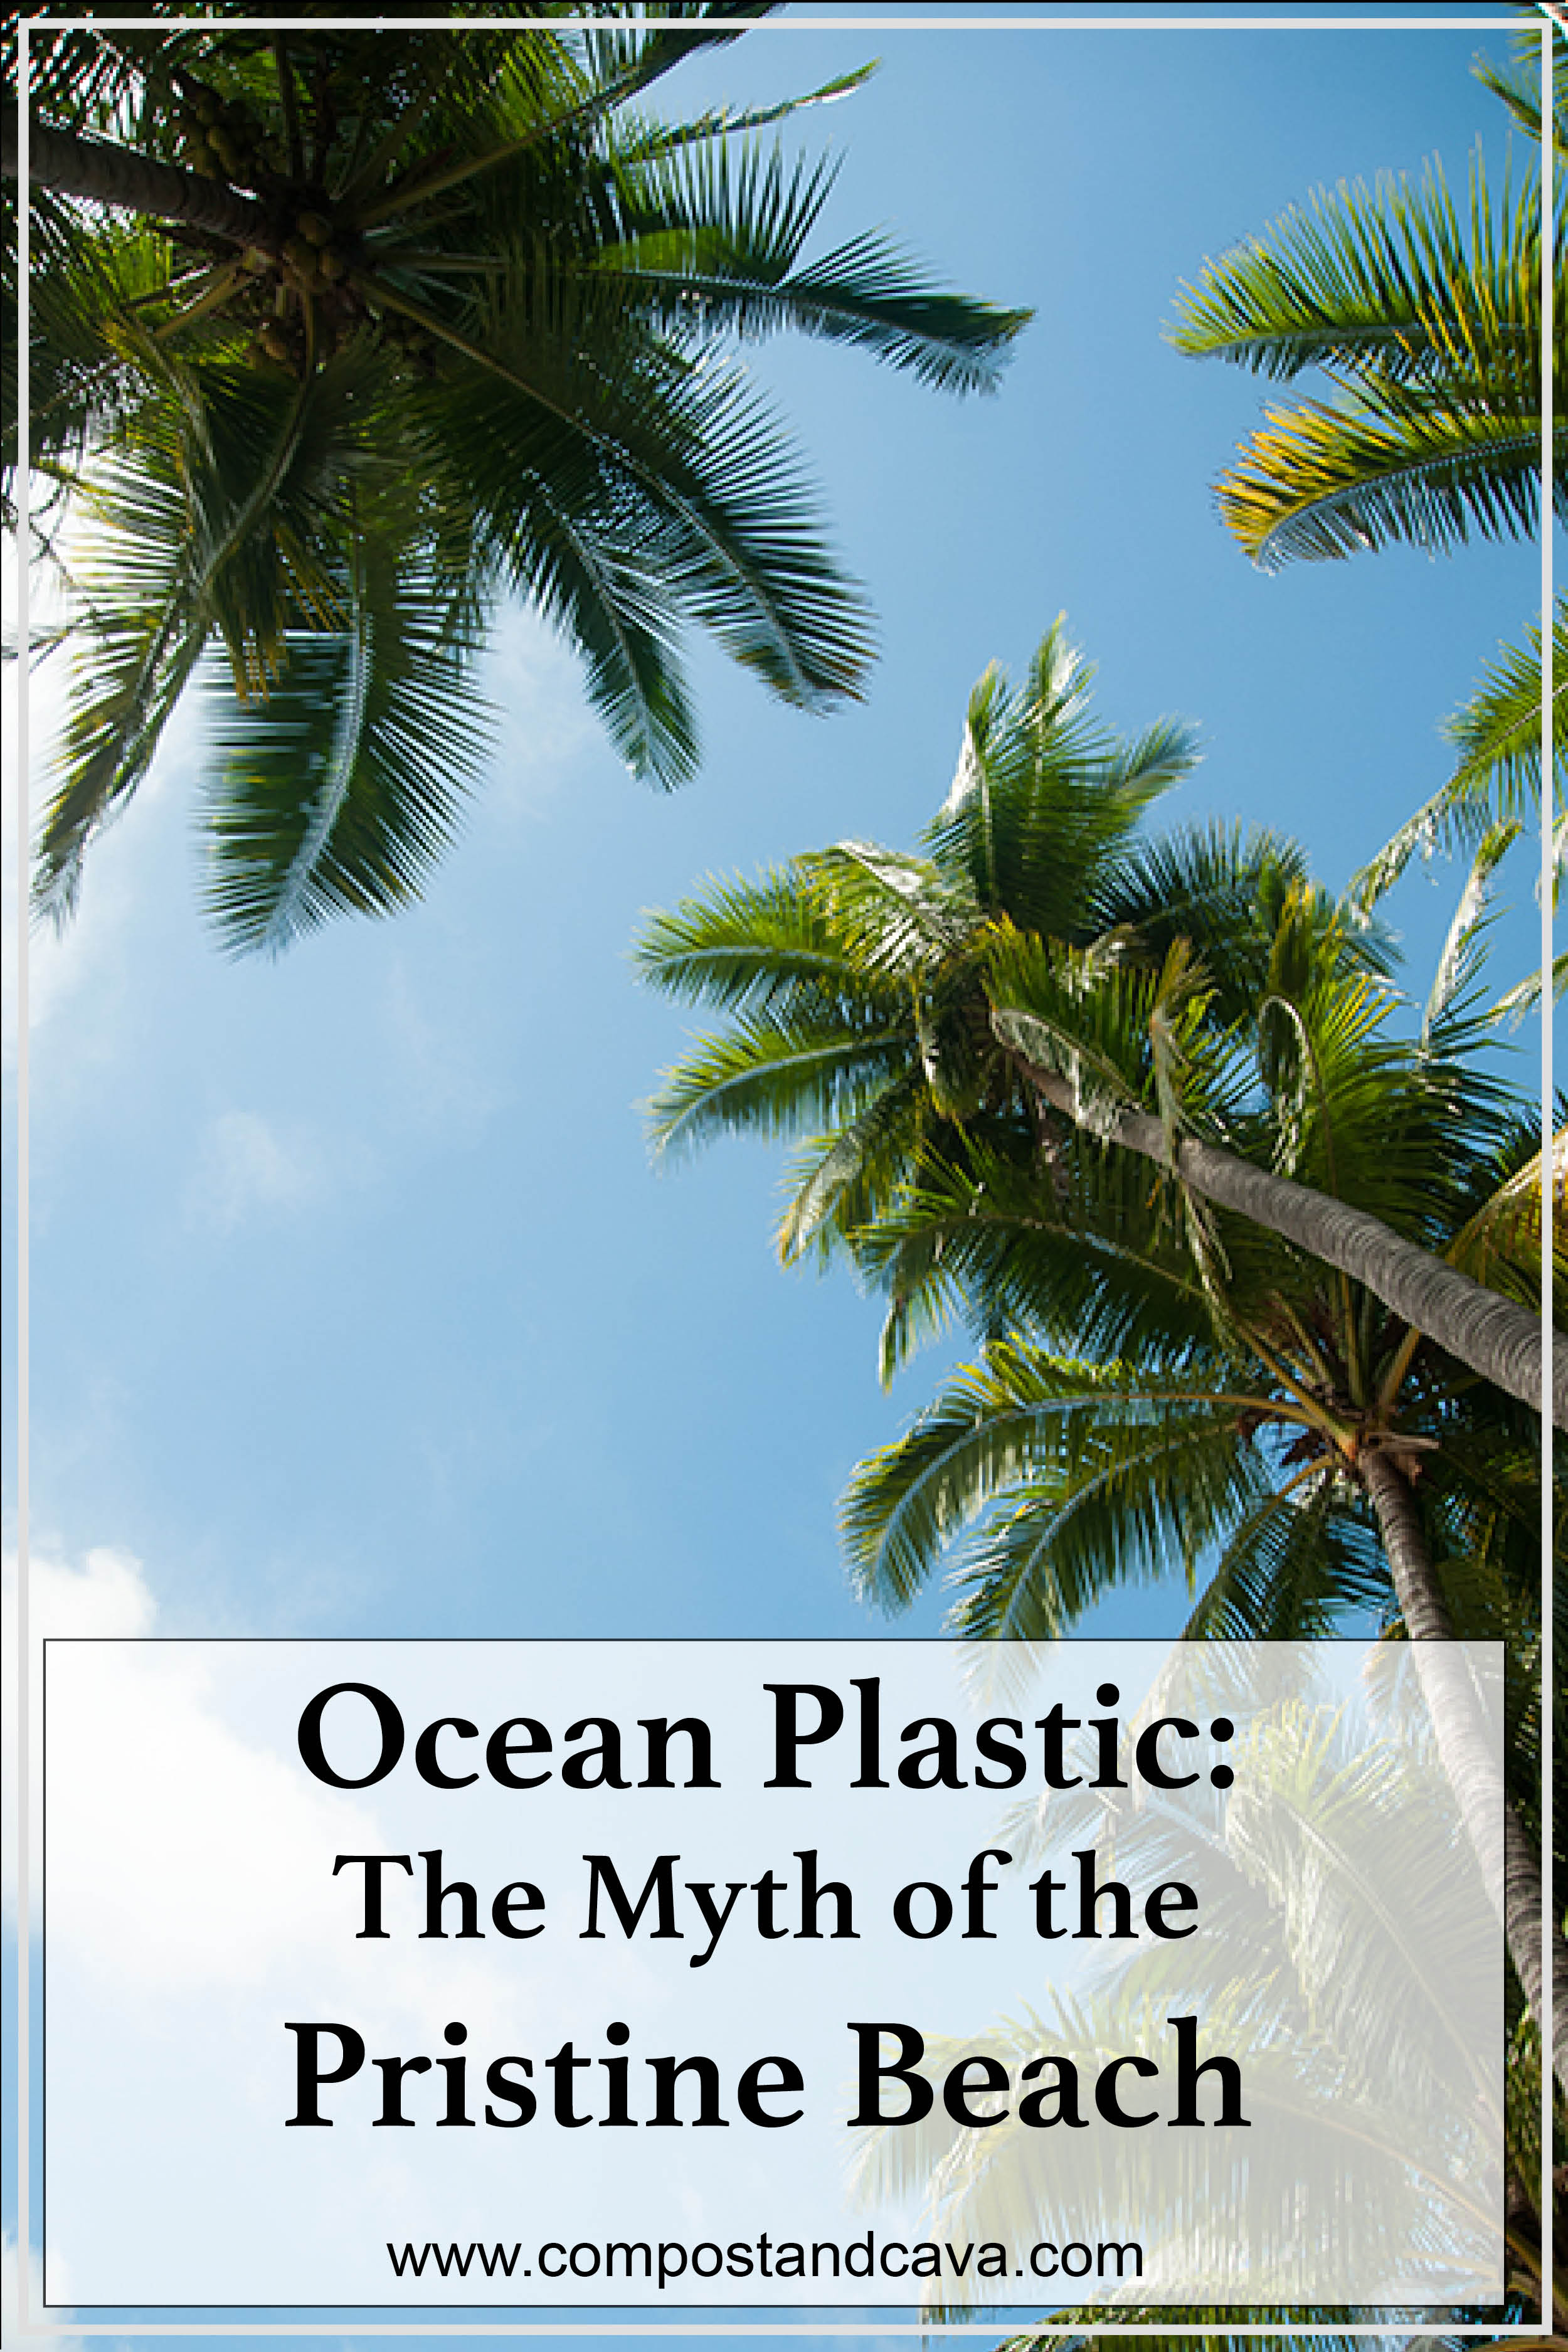 Ocean Plastic: The Myth of the Pristine Beach